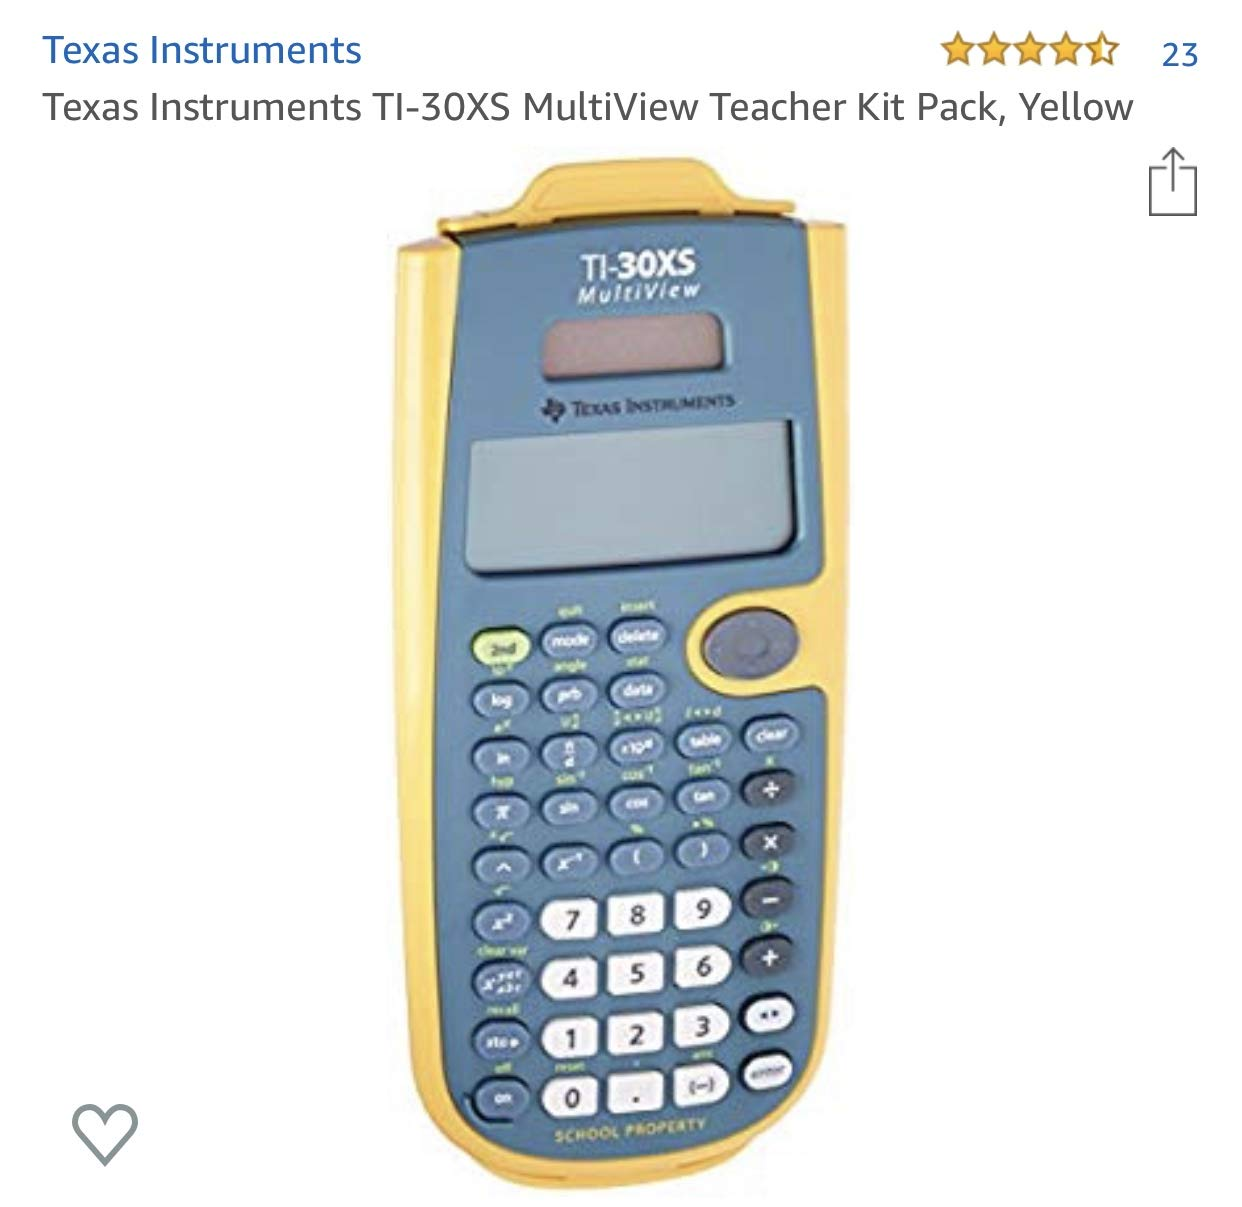 Texas Instruments TI-30XS Multiview Scientific Calculator by Texas Instruments